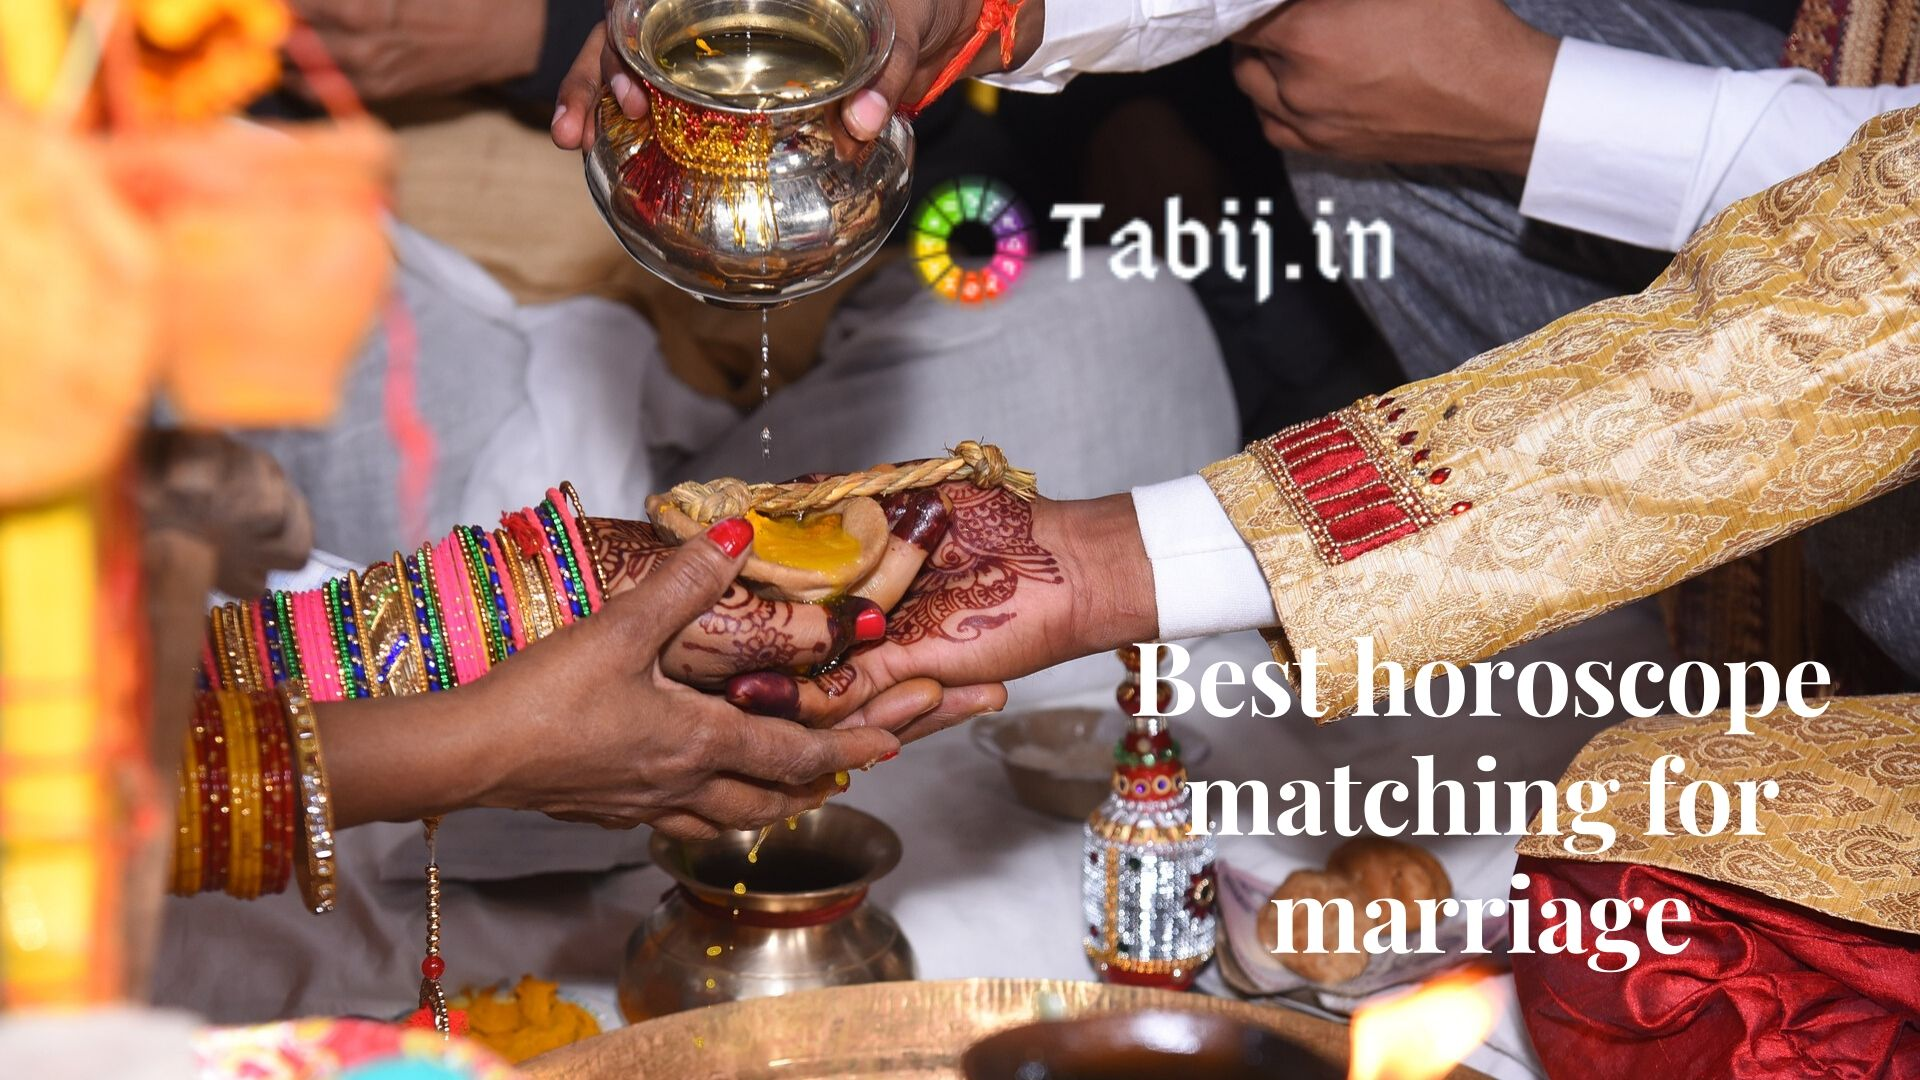 Free best horoscope matching for marriage